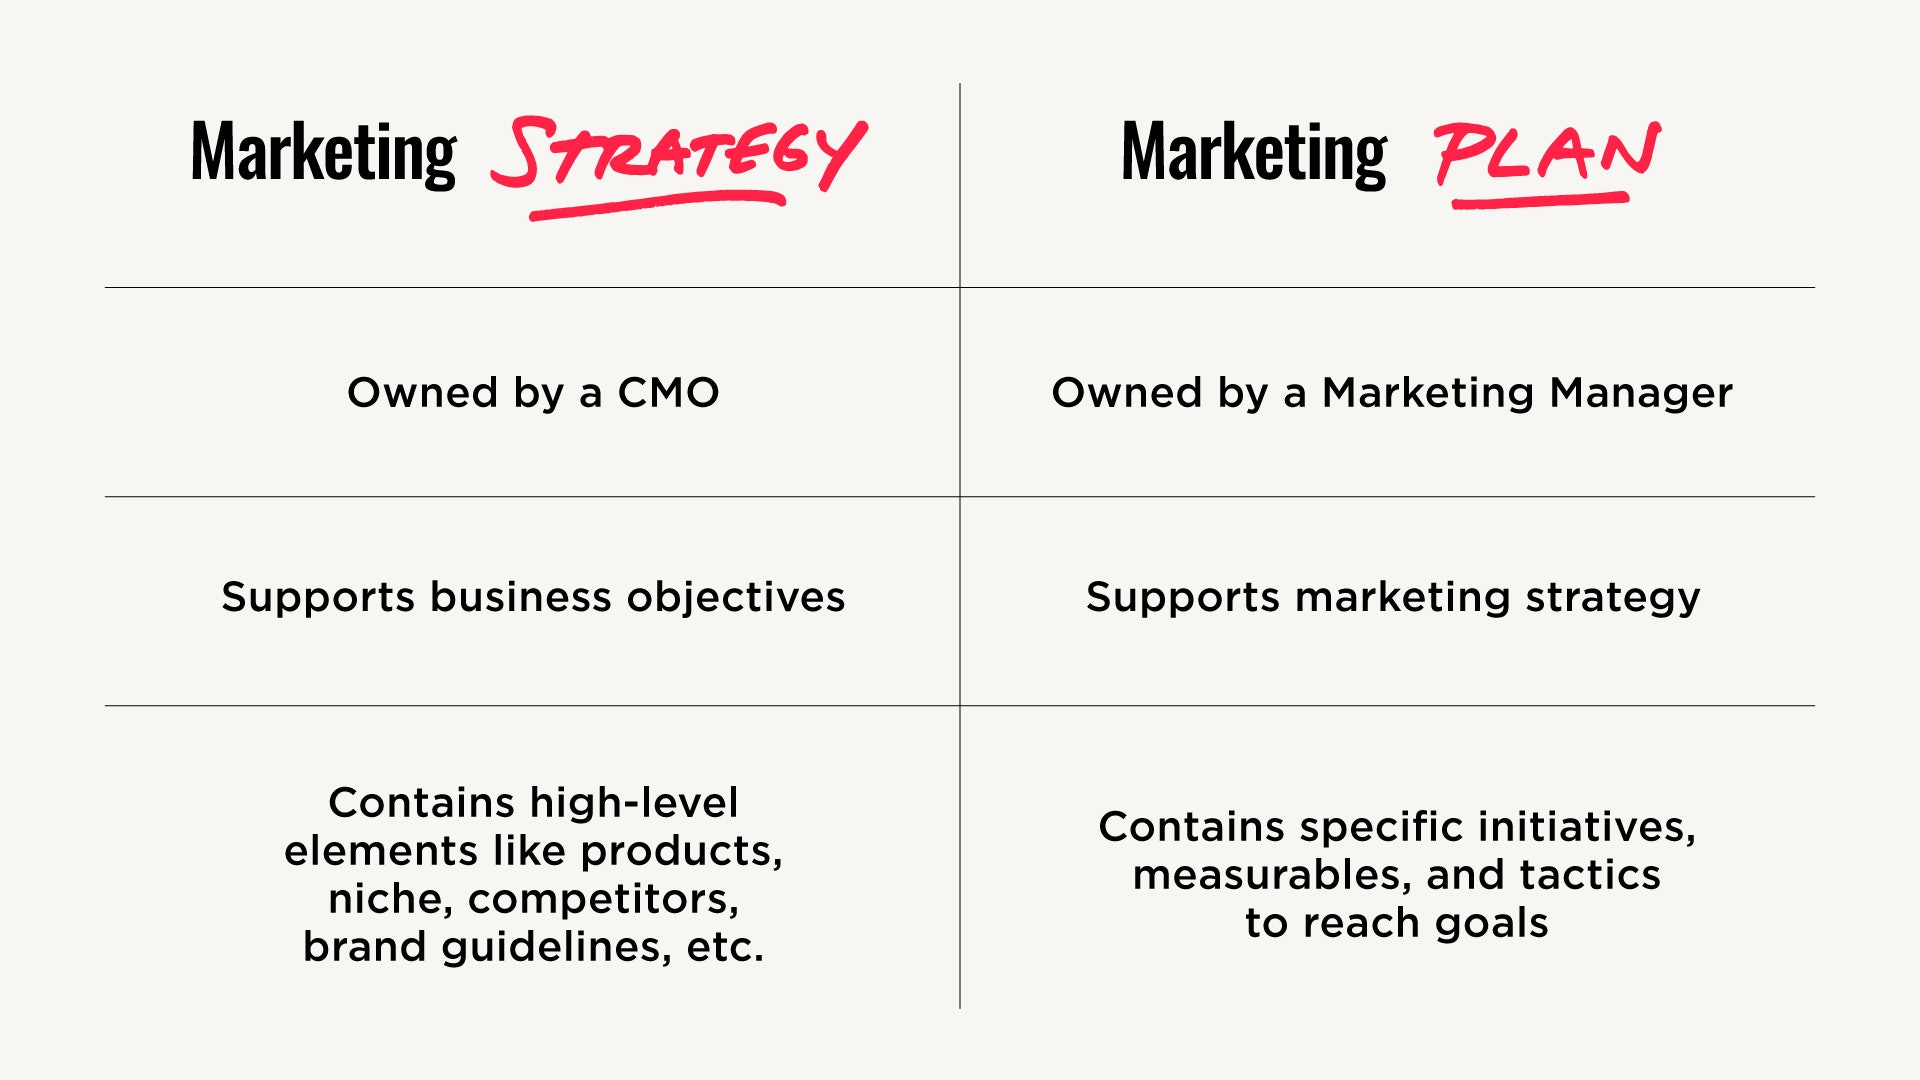 Marketing Strategy vs. Marketing Plan